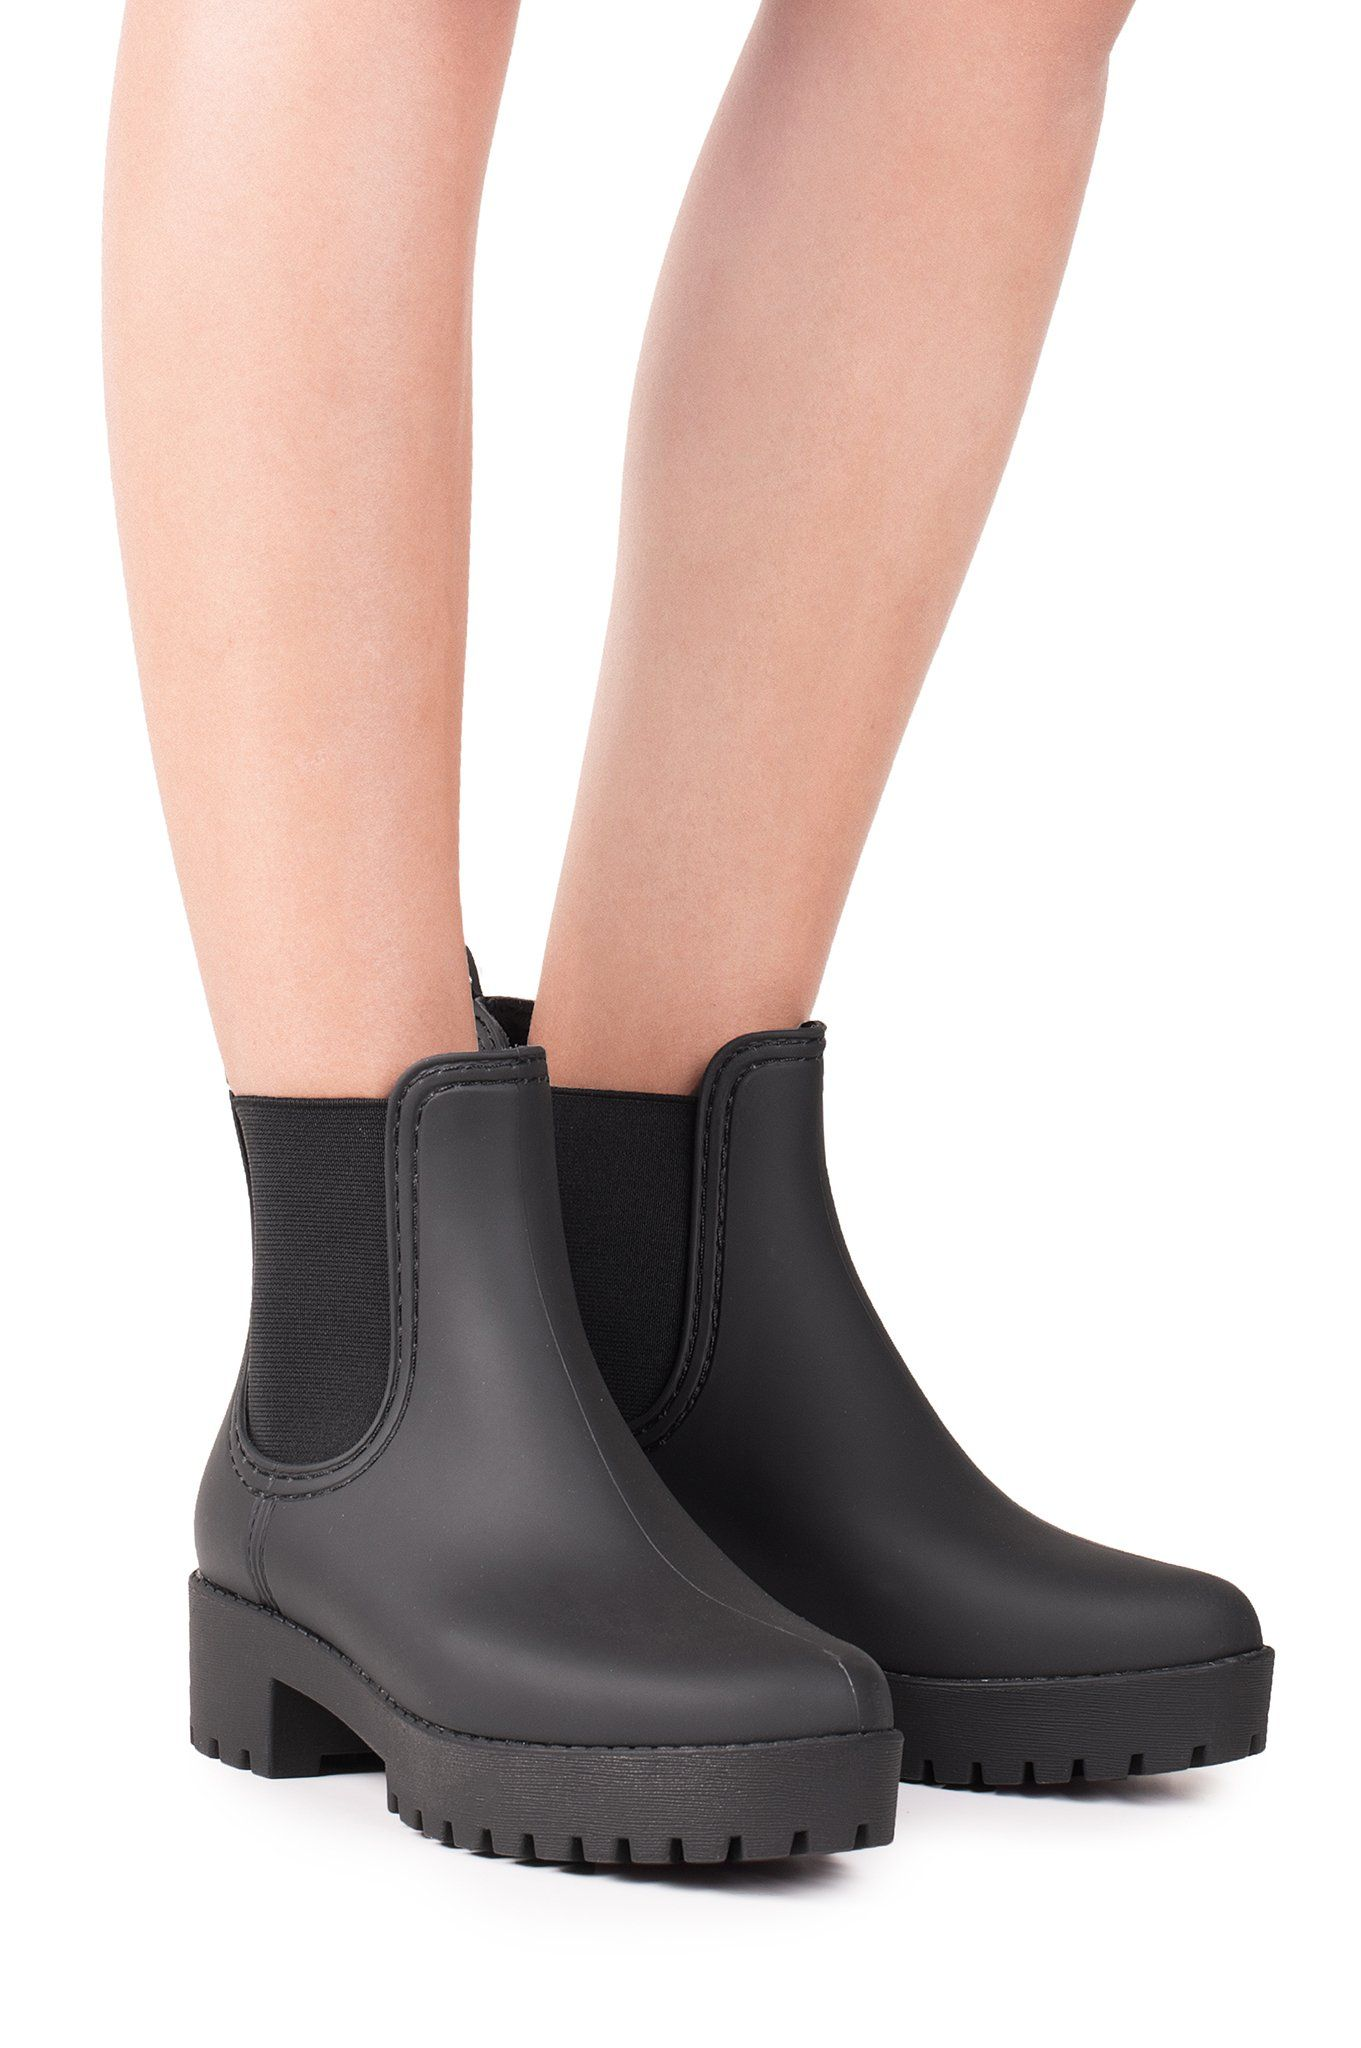 c8cdd2871 Water resistant Chelsea style rain boots. - Fits true to size -  Measurements taken from size 6 - 1.75